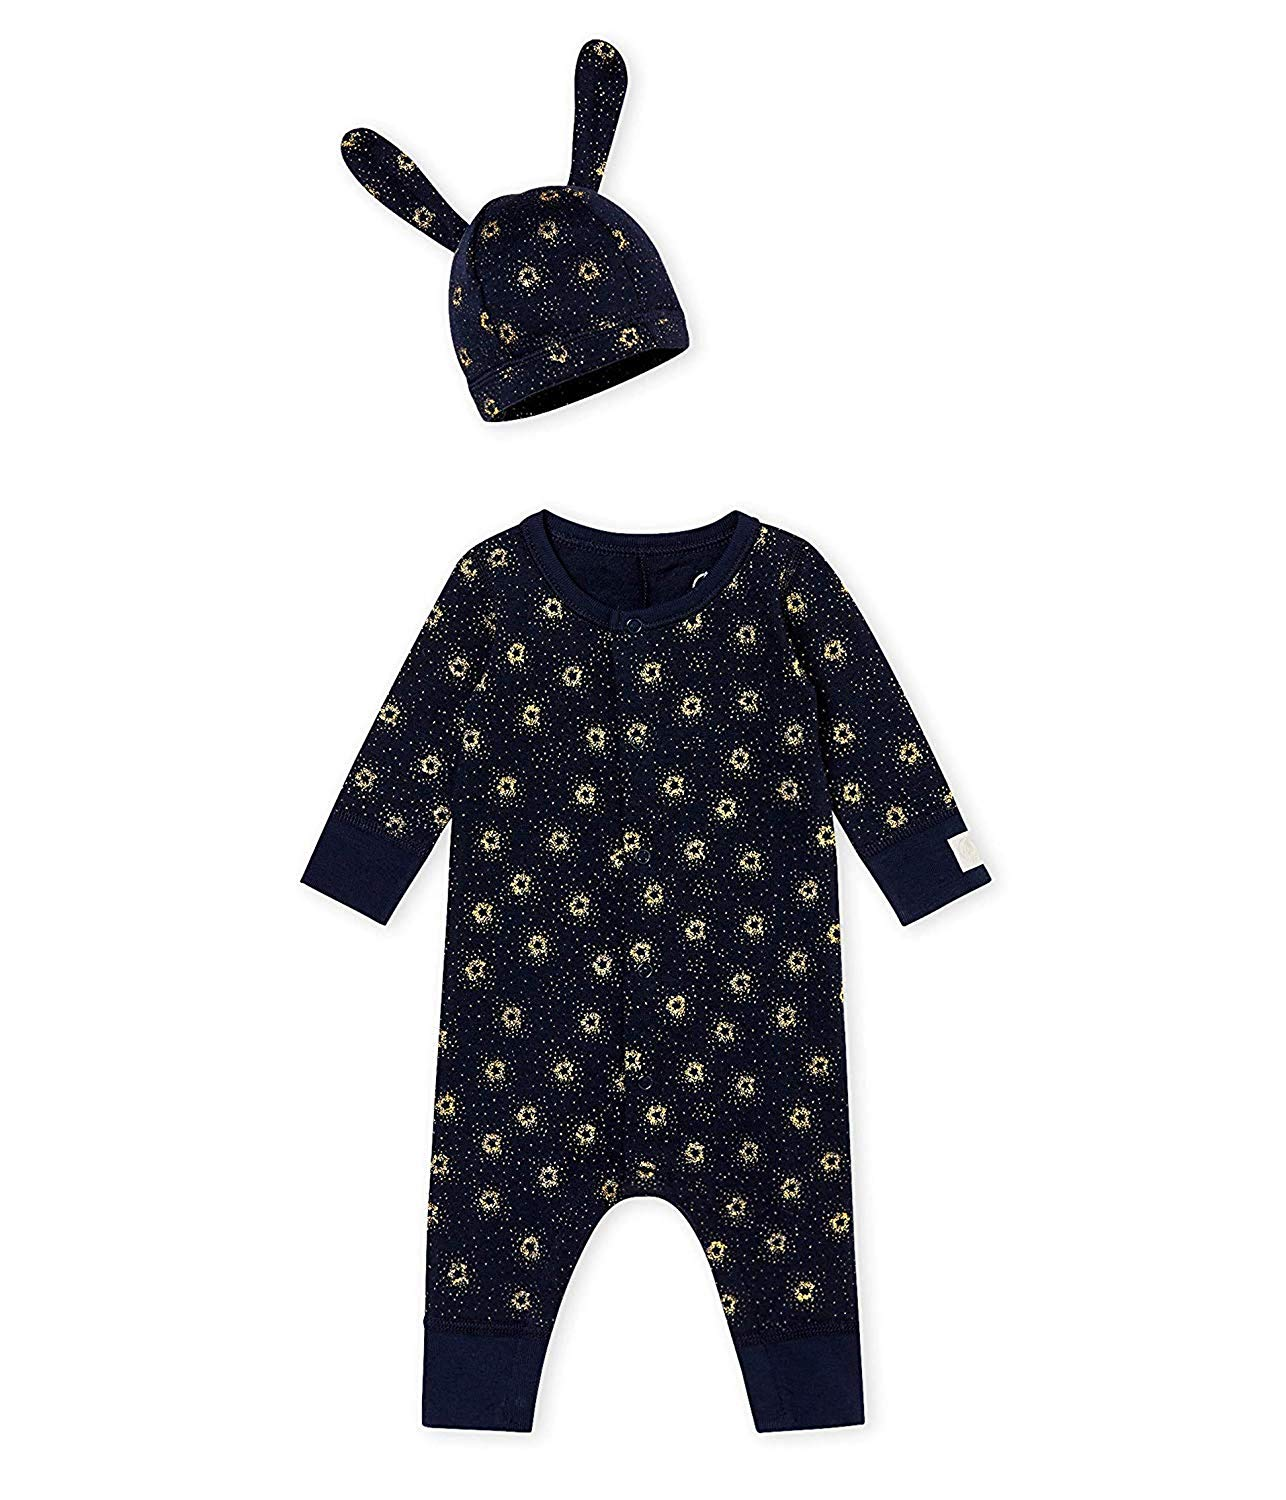 Petit Bateau 2 Pc Set, Navy and Metallic Sparked Print Romper with Hat (6m)